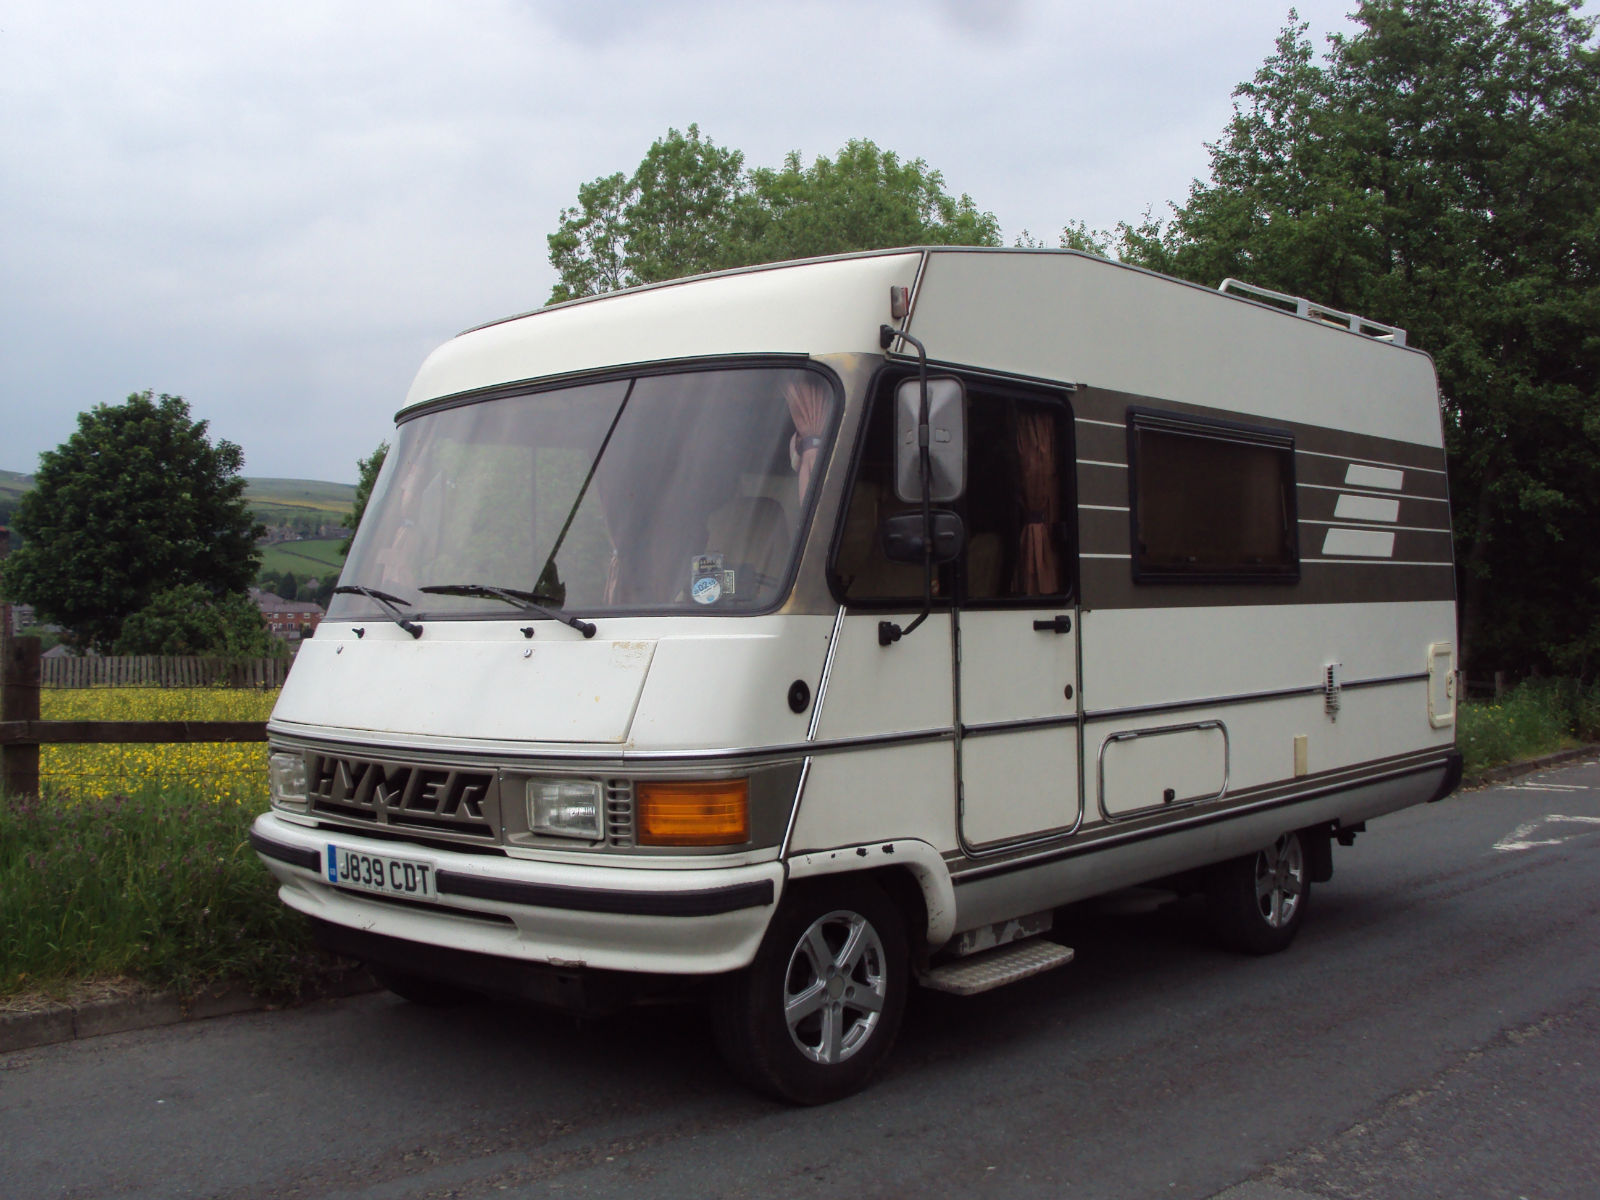 Used Motorhomes For Sale By Owner >> Used RVs 1991 Fiat Ducato Hymer For Sale For Sale by Owner